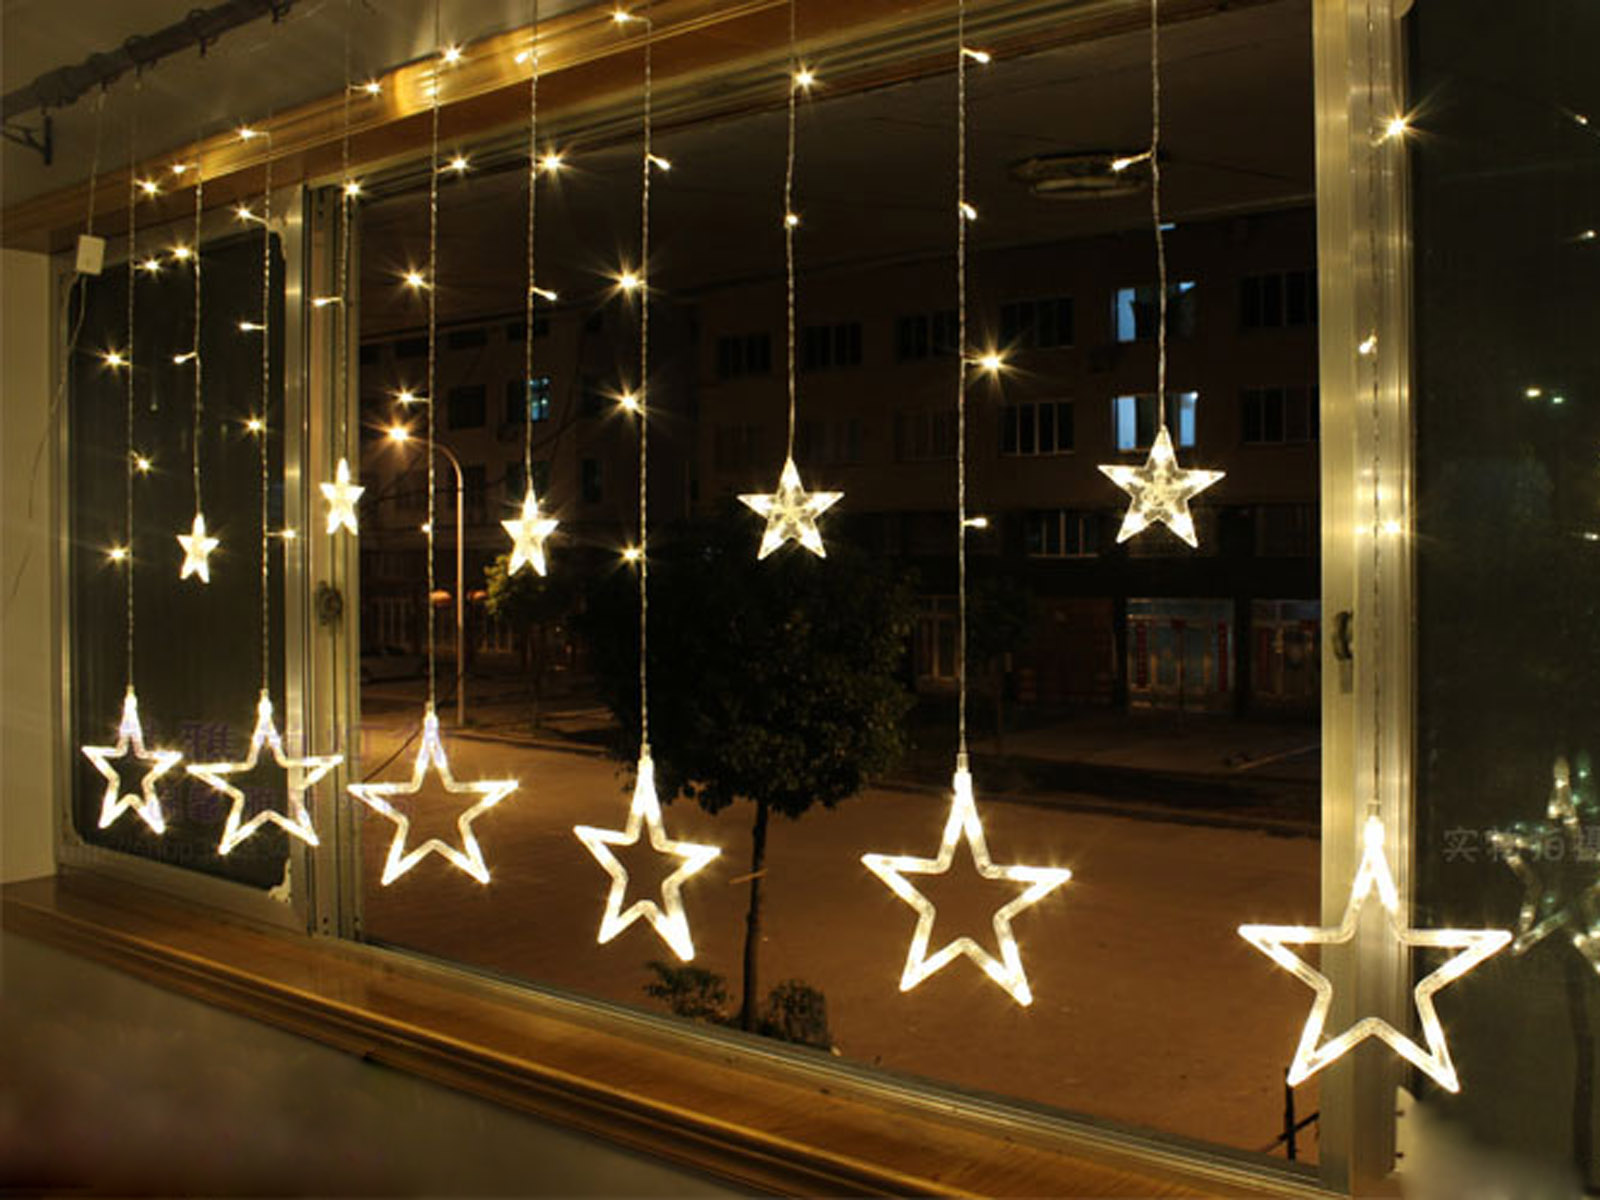 aliexpresscom buy ac110 240v 138 leds strobe light christmas stars decorative string light for christmas partys wedding new year decorations from